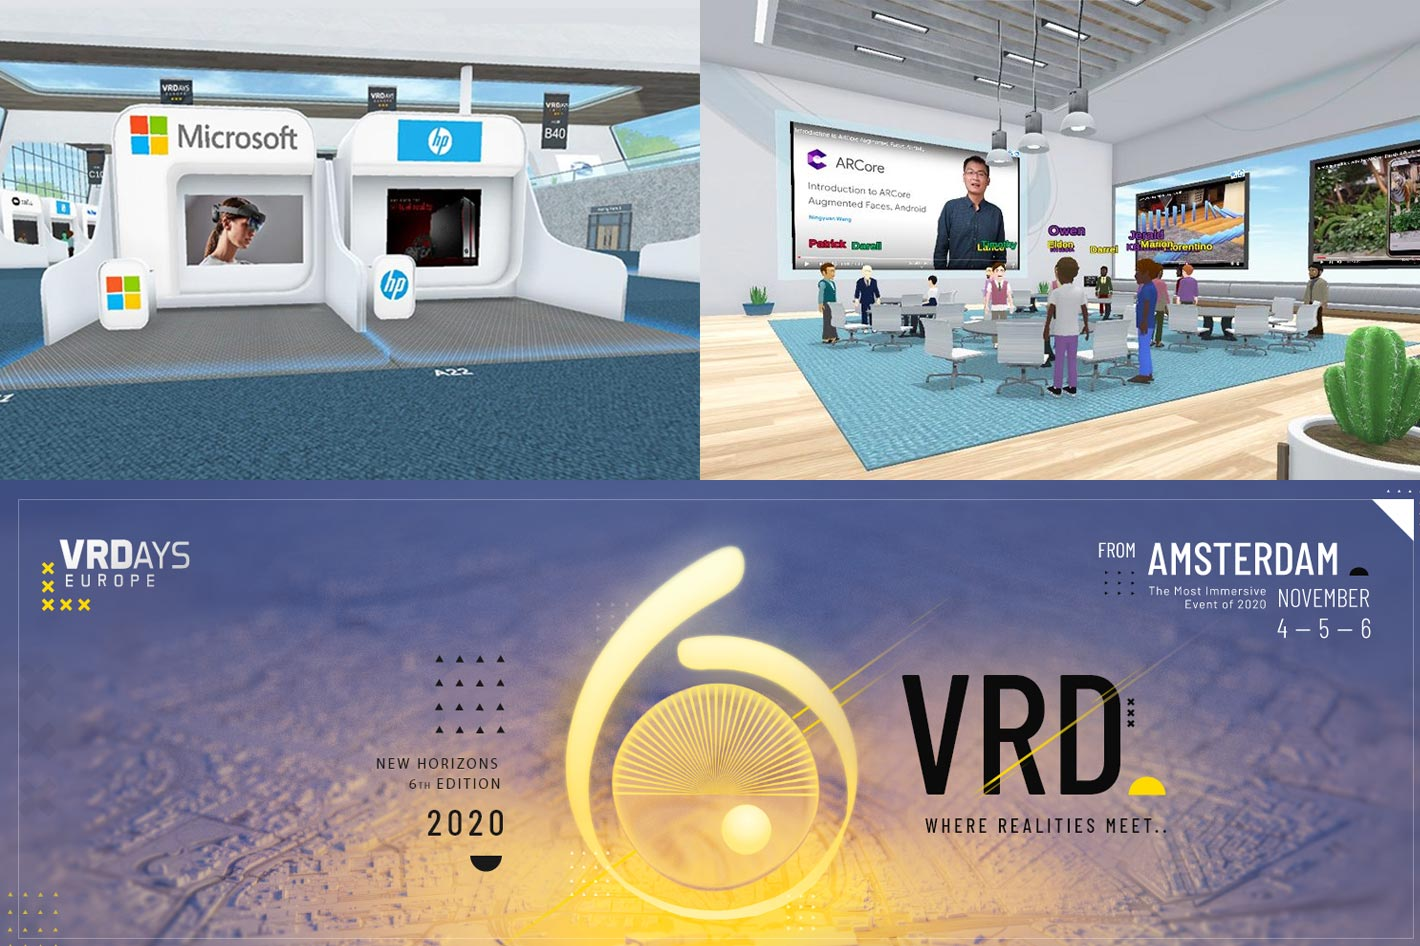 VRDays: three days of online conferences on VR and AR